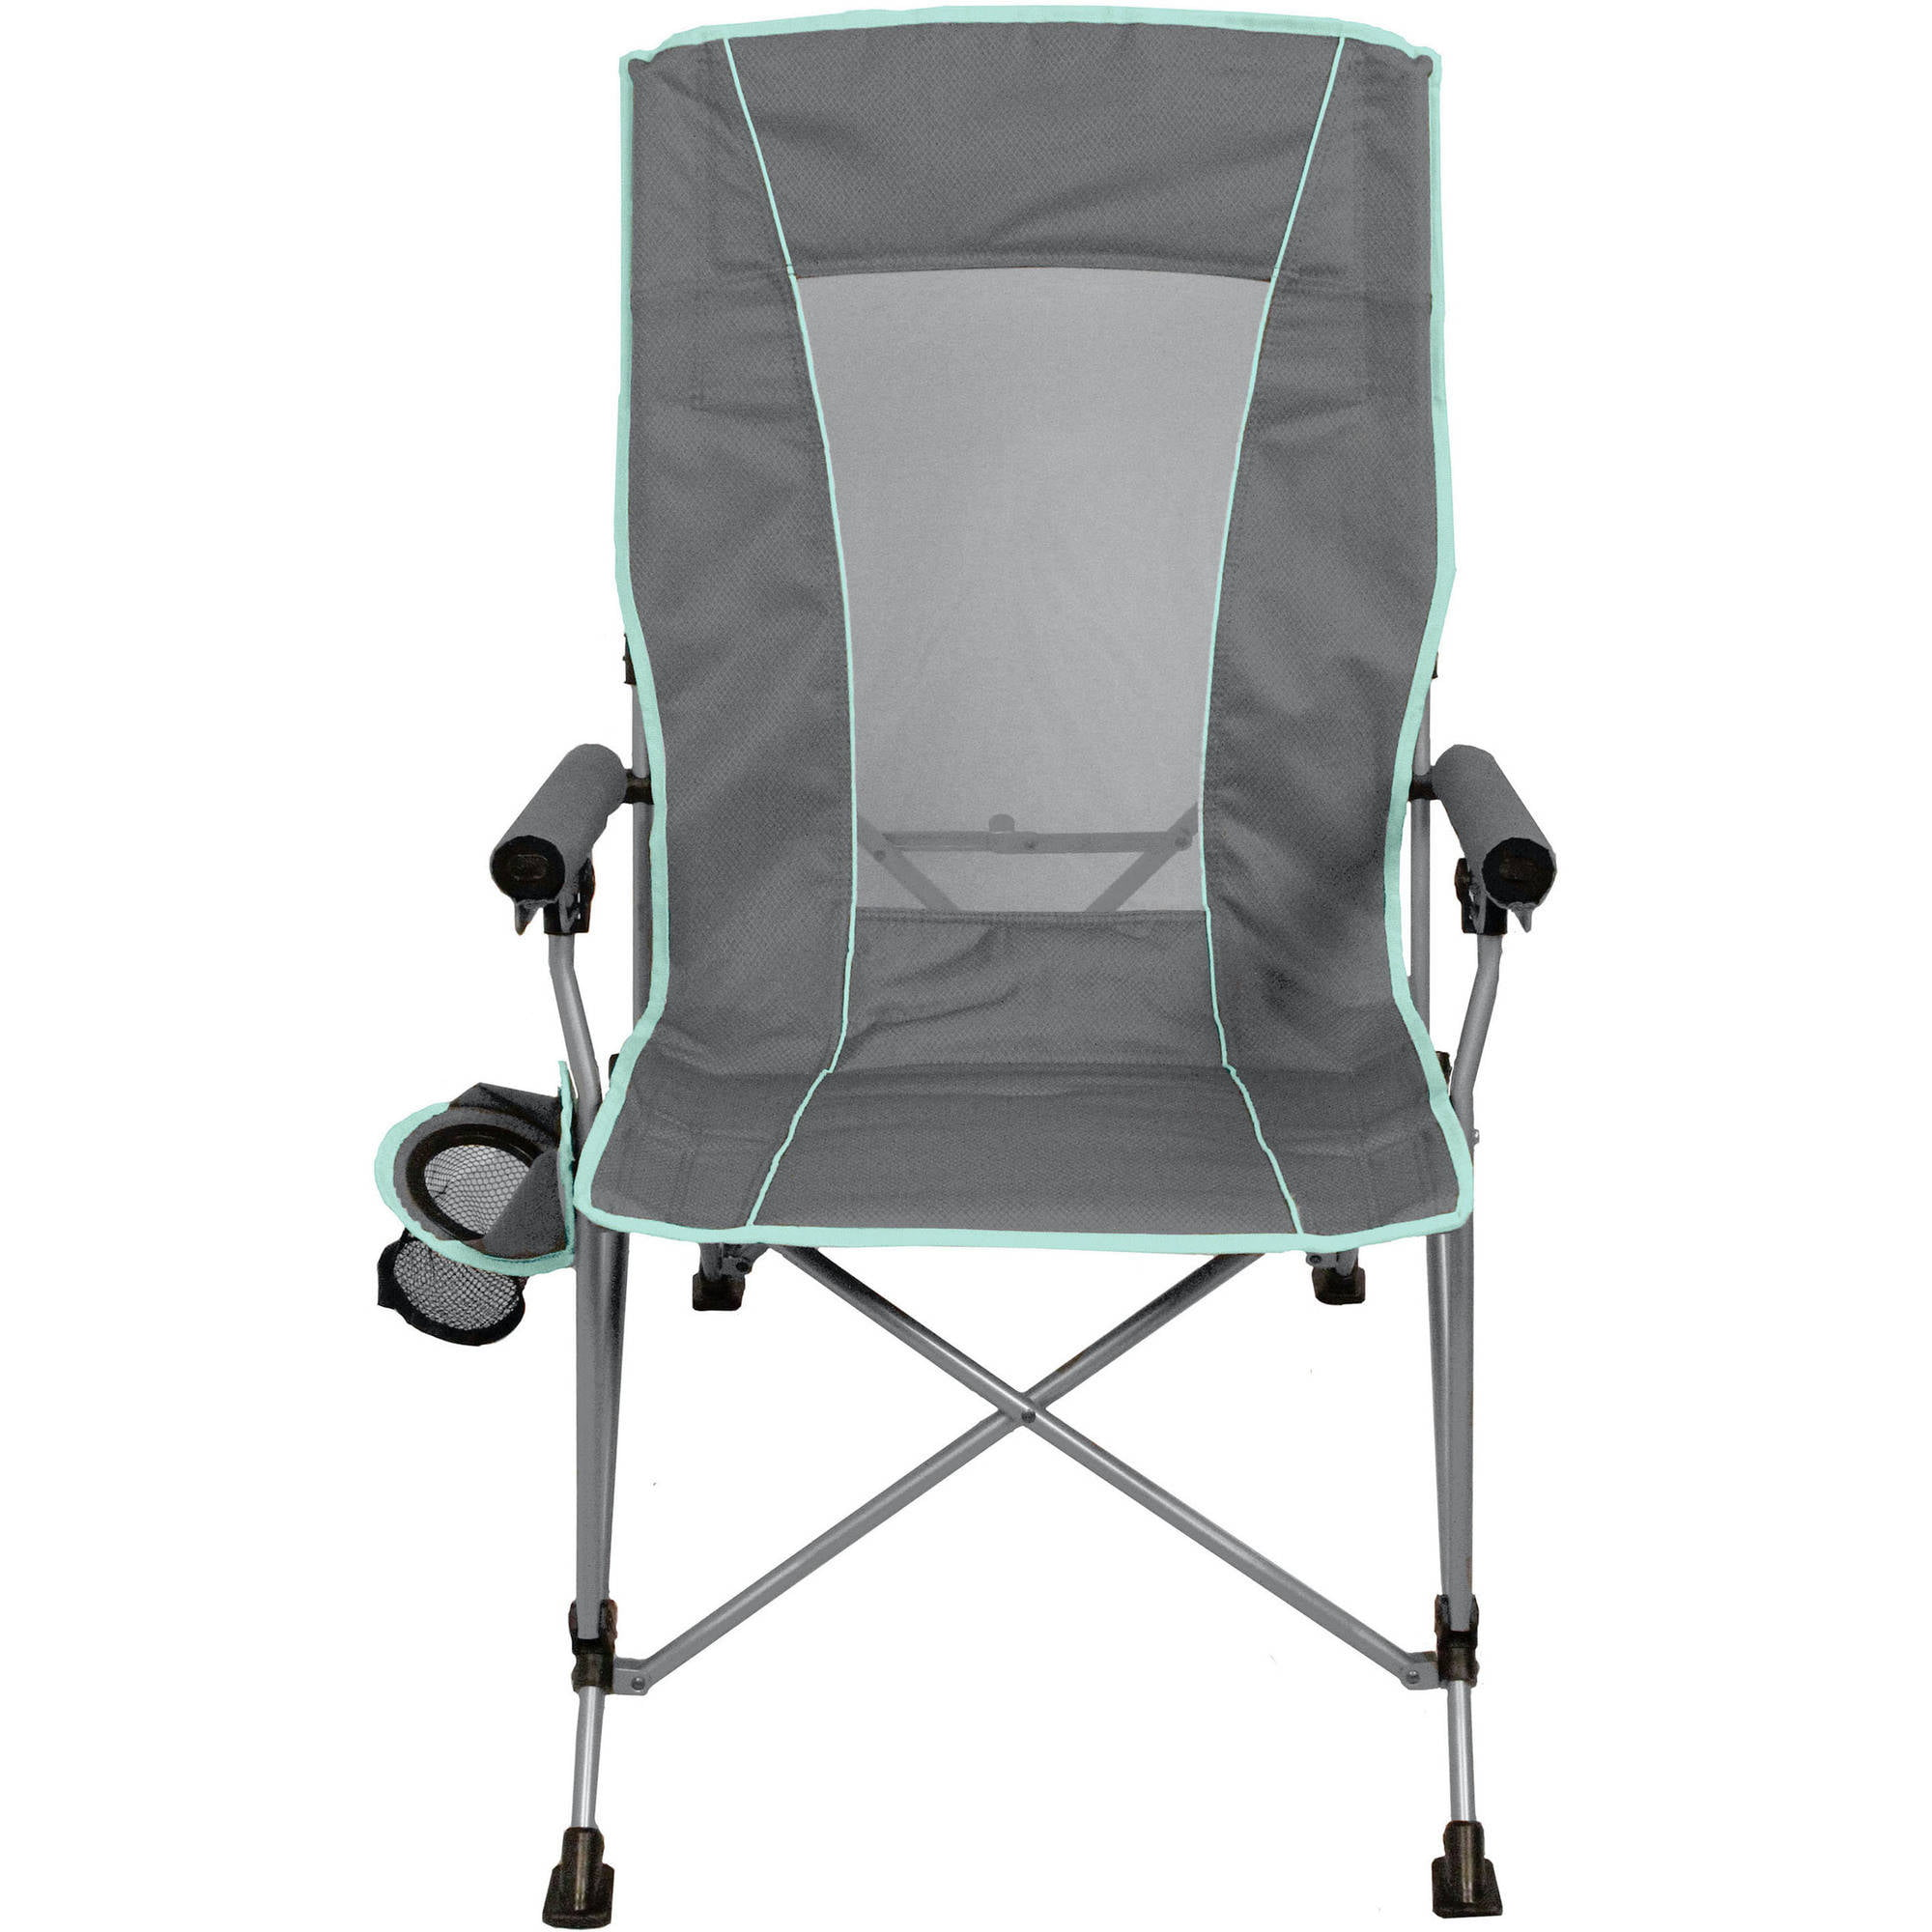 Ozark Trail 3 Position High Back Chair with Steel Frame Grey